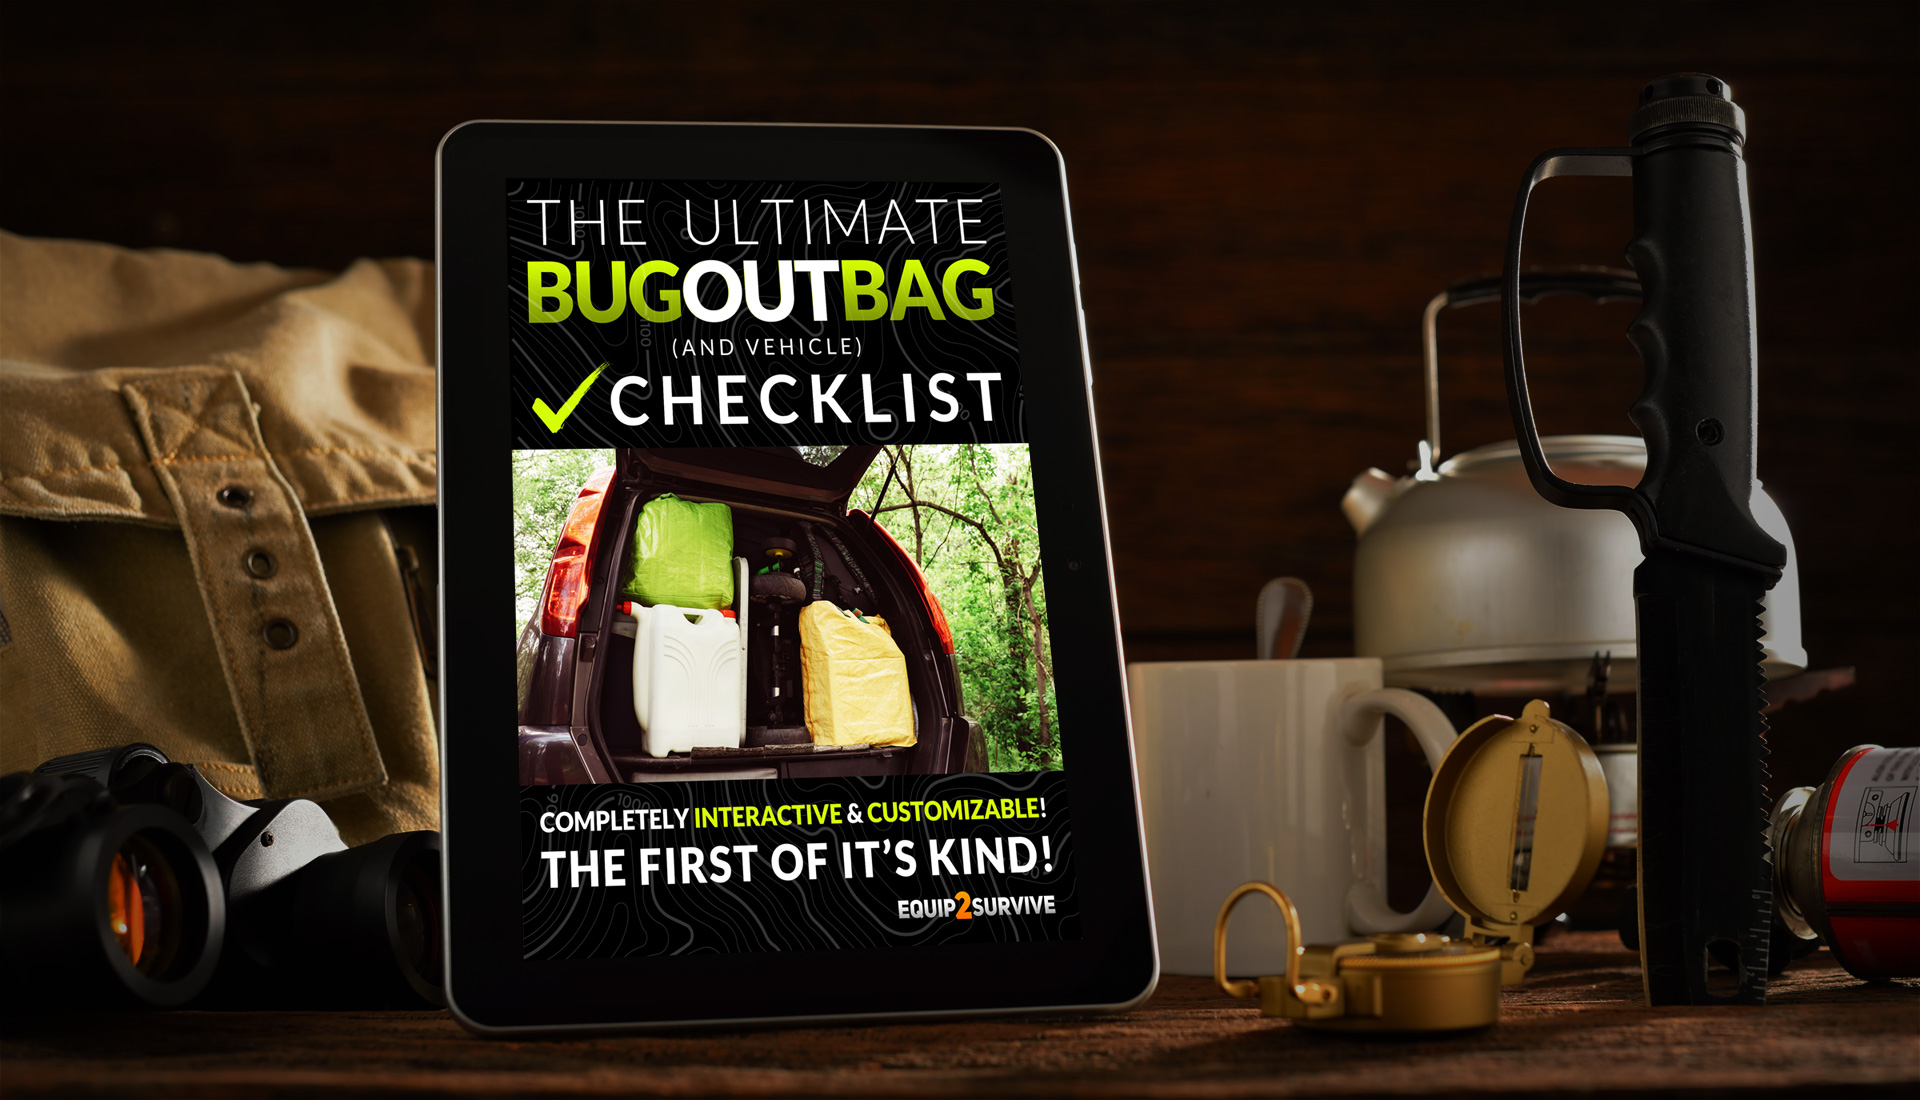 The Ultimate Bug Out Bag Checklist!